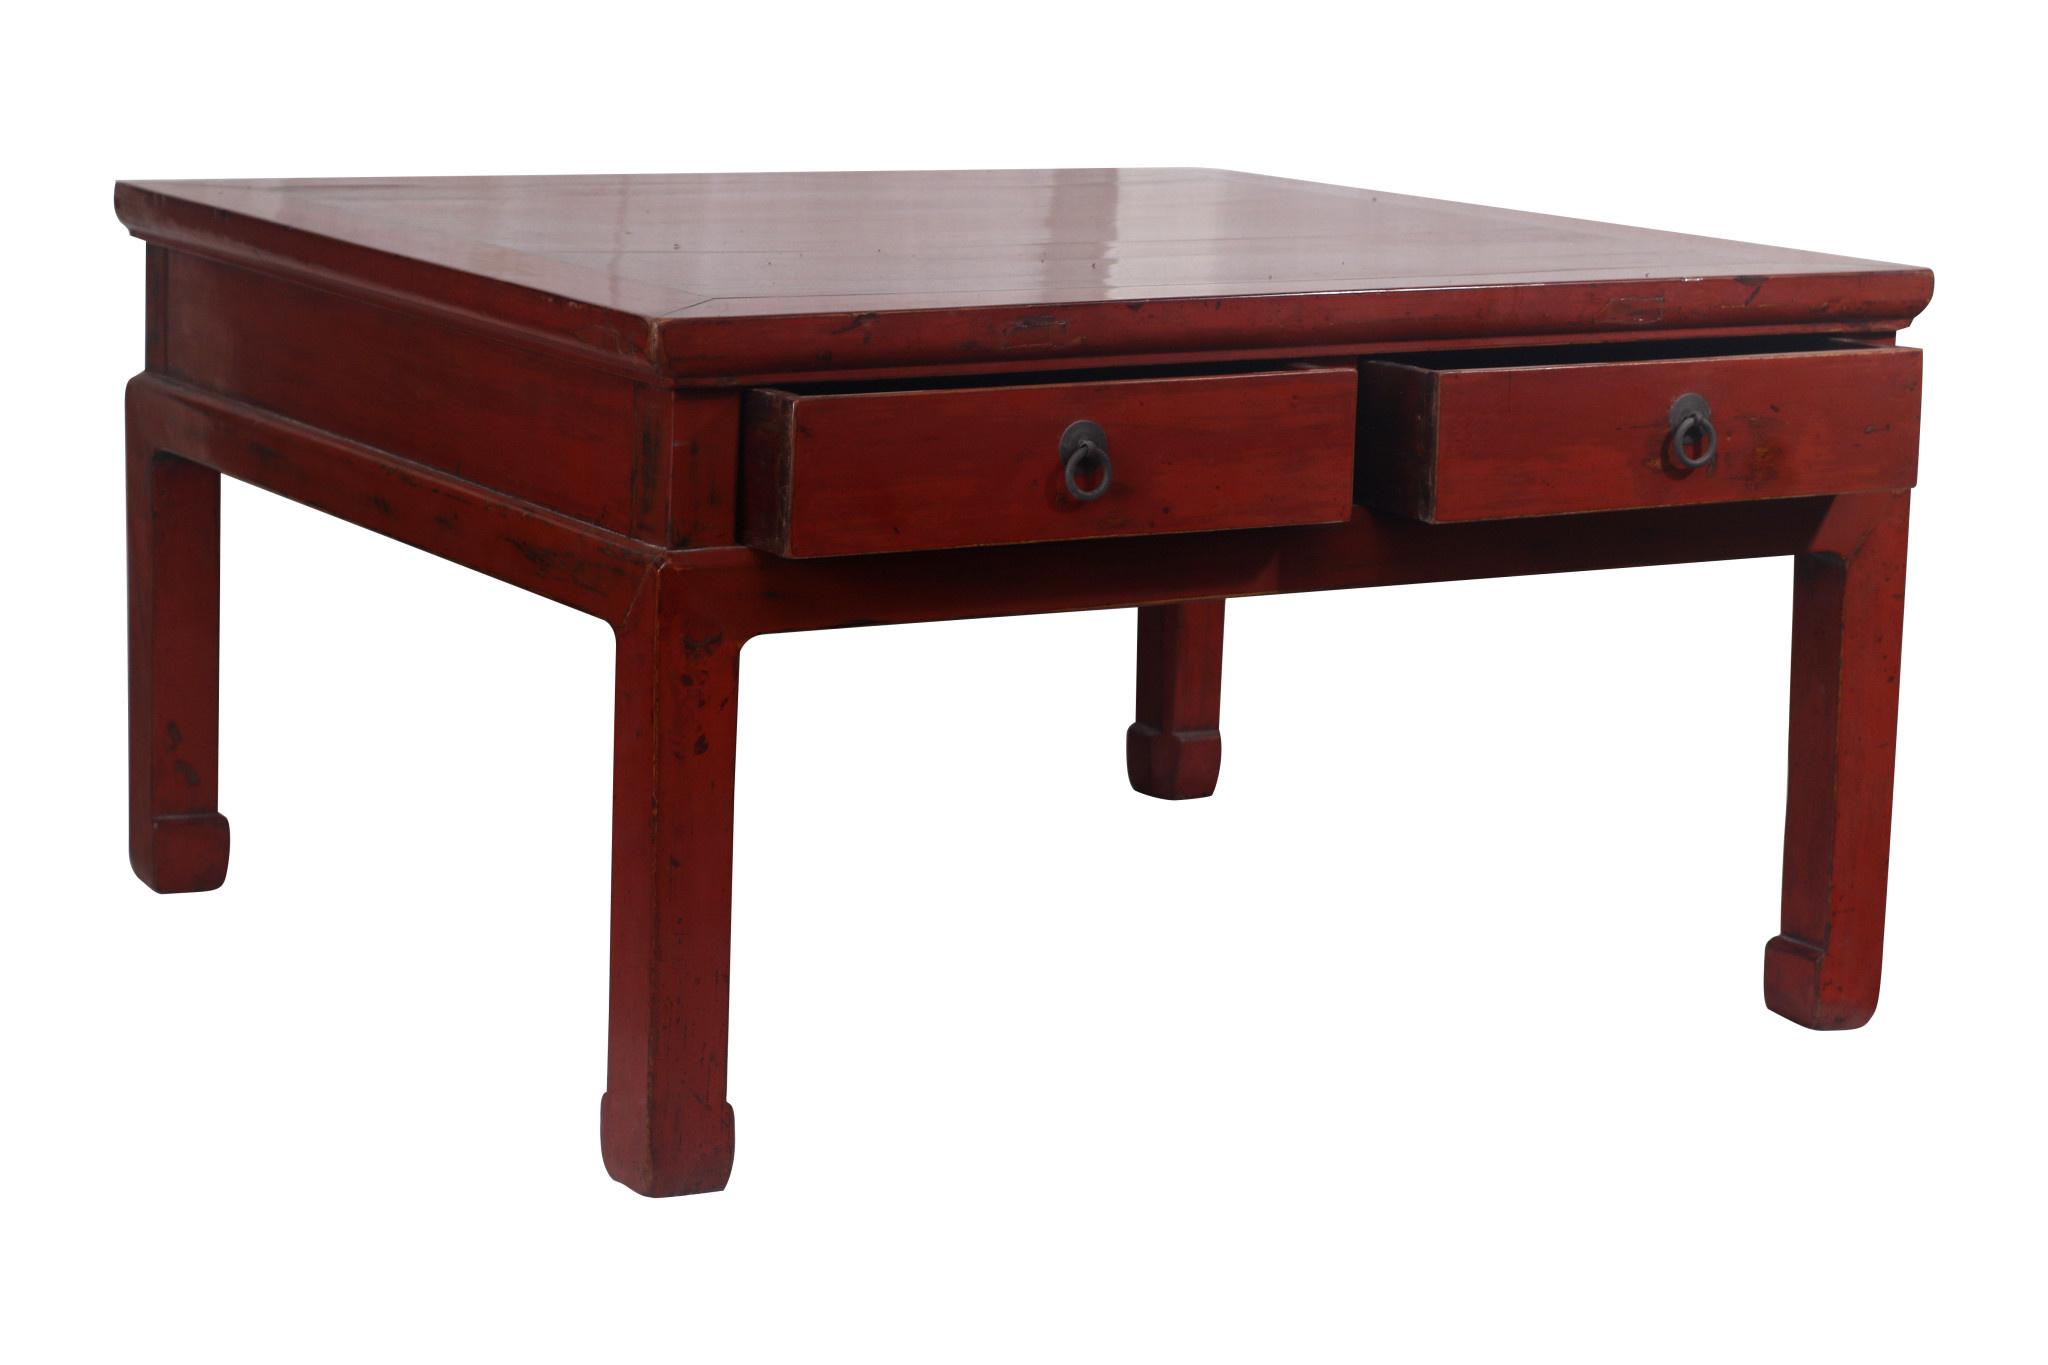 Prime Fine Asianliving Fine Asianliving Chinese Coffee Table Drawers Beijing China Caraccident5 Cool Chair Designs And Ideas Caraccident5Info